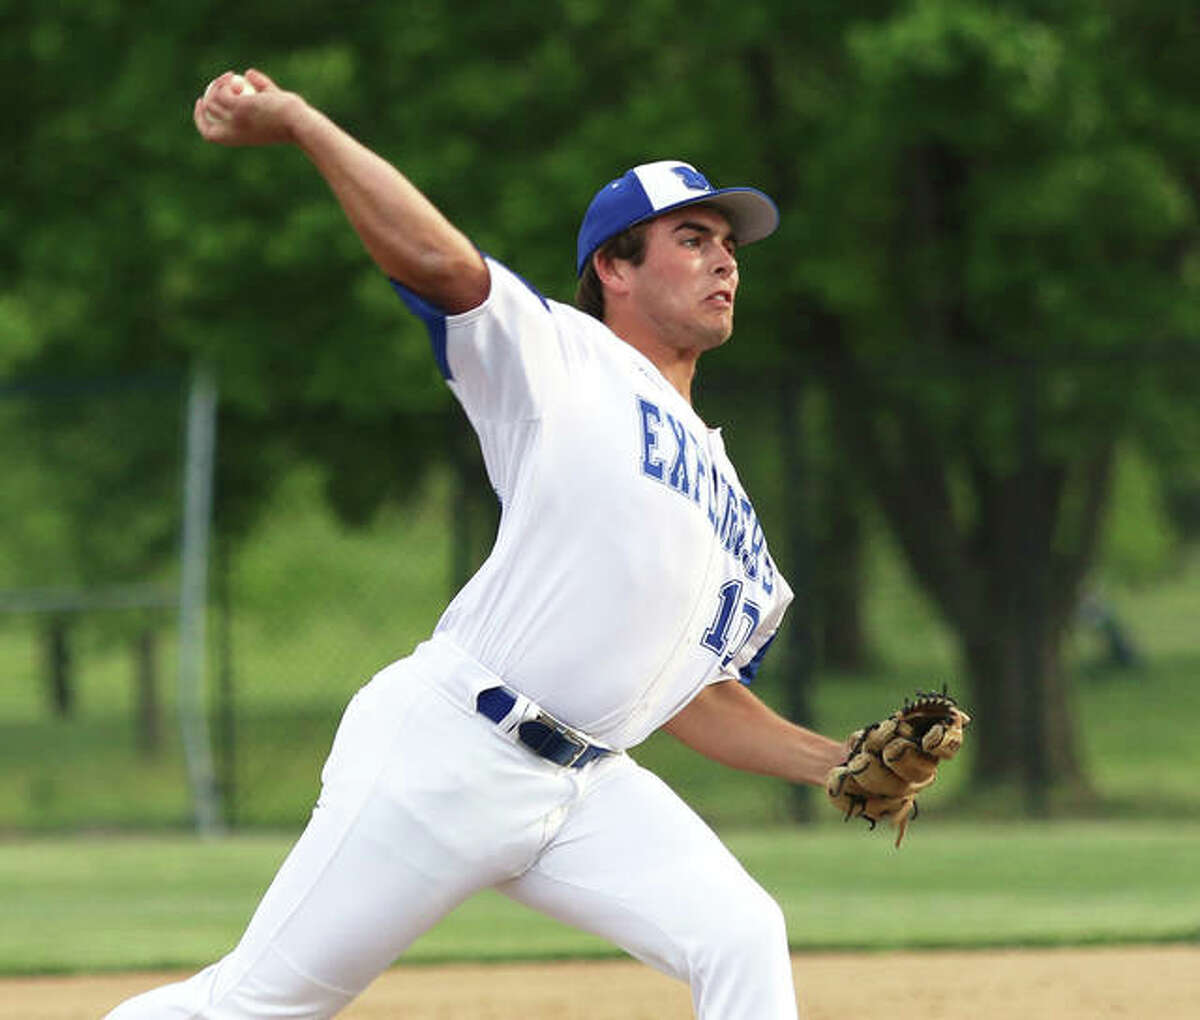 Marquette Catholic's Nolan Rea, shown pitching earlier in the season in Alton, was back on the mound Wednesday and took the loss in a 4-1 defeat to the Miners in Gillespie.